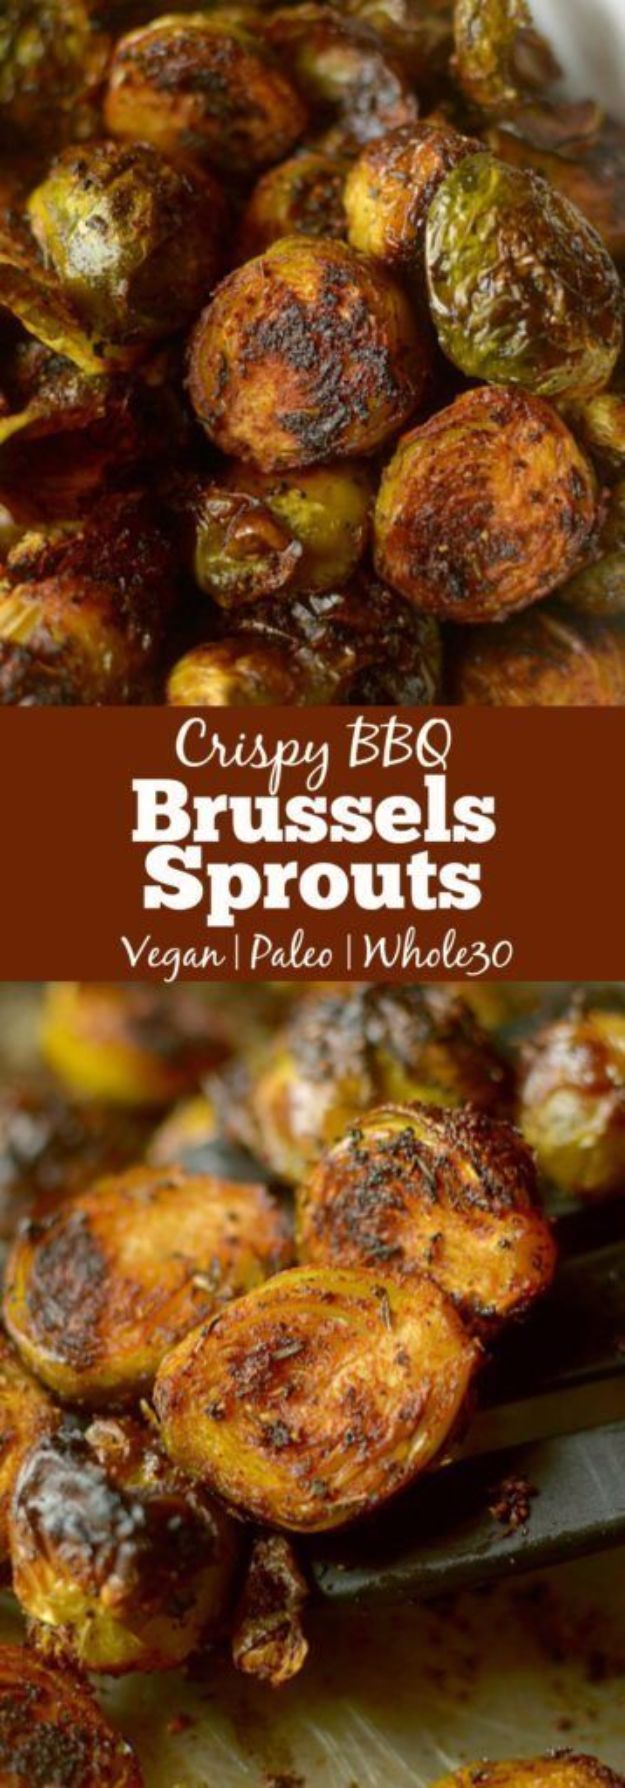 Best Brussel Sprout Recipes - Crispy Barbecue Spiced Brussels Sprouts - Easy and Quick Delicious Ideas for Making Brussel Sprouts With Bacon, Roasted, Creamy, Healthy, Baked, Sauteed, Crockpot, Grilled, Shredded and Salad Recipe Ideas #recipes